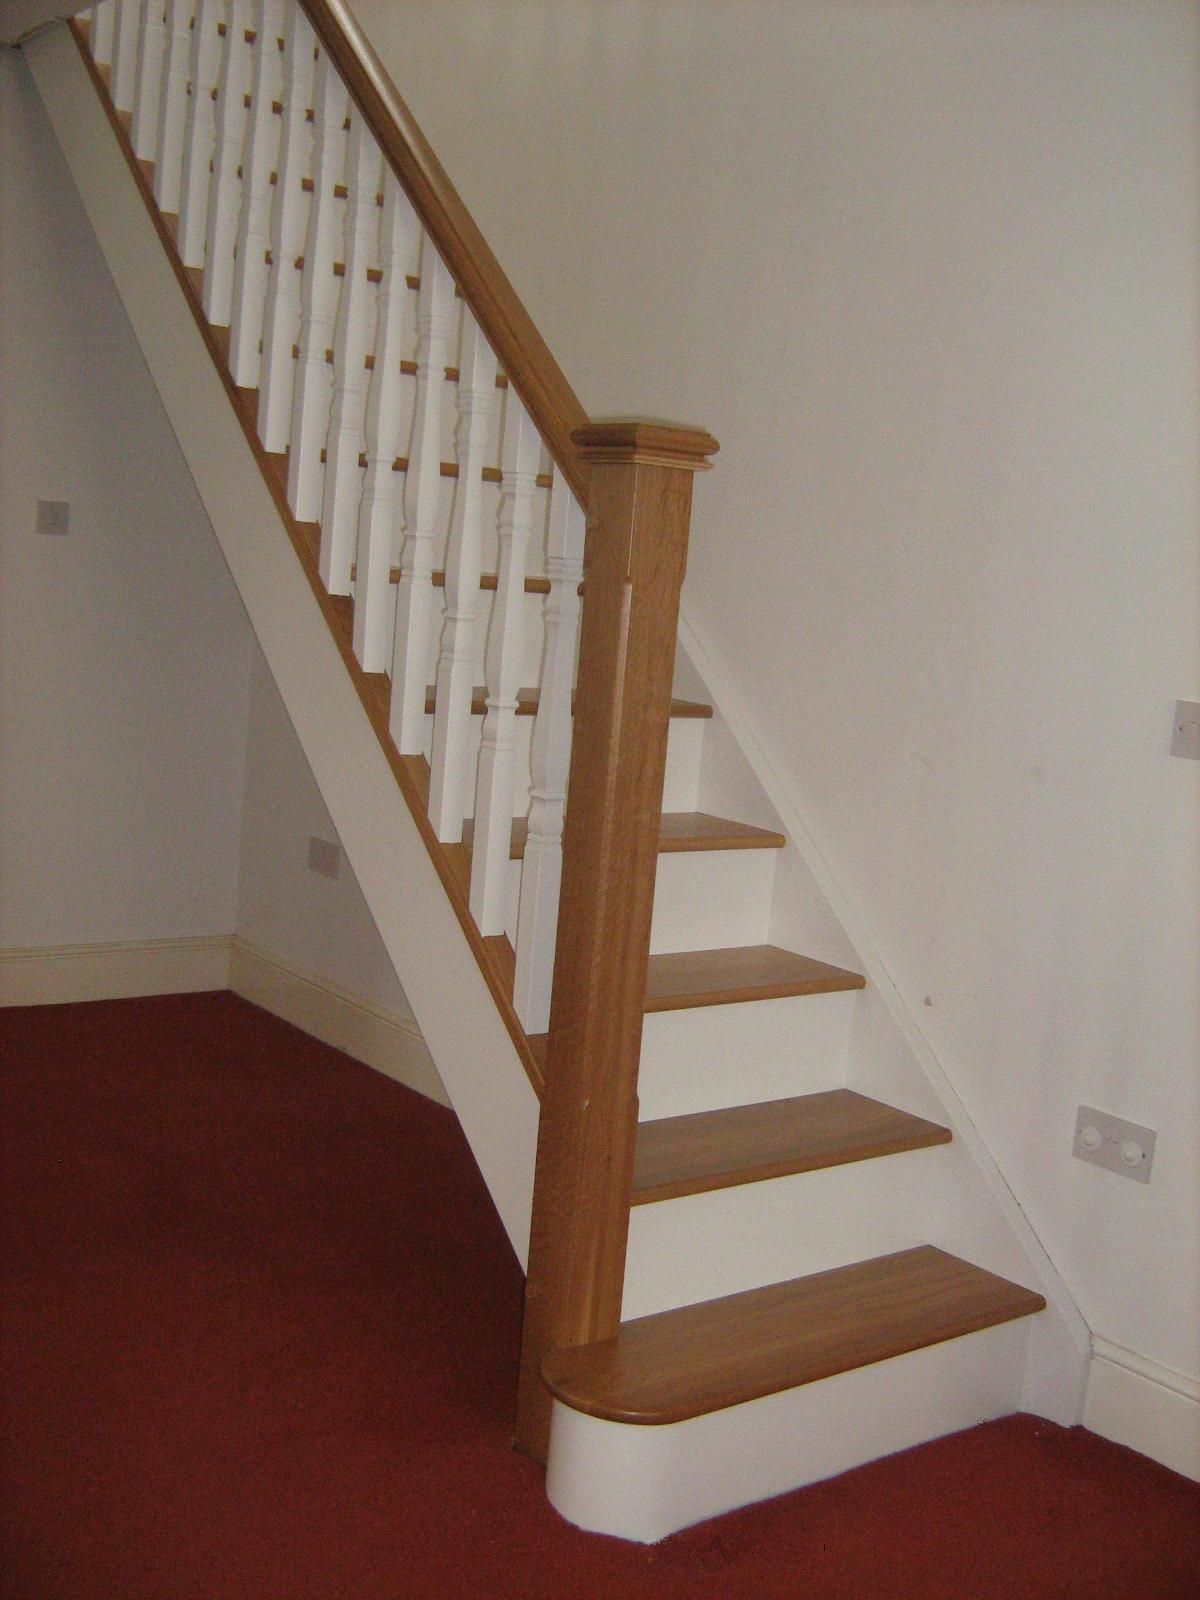 Oak and white staircase with white spindles. Would